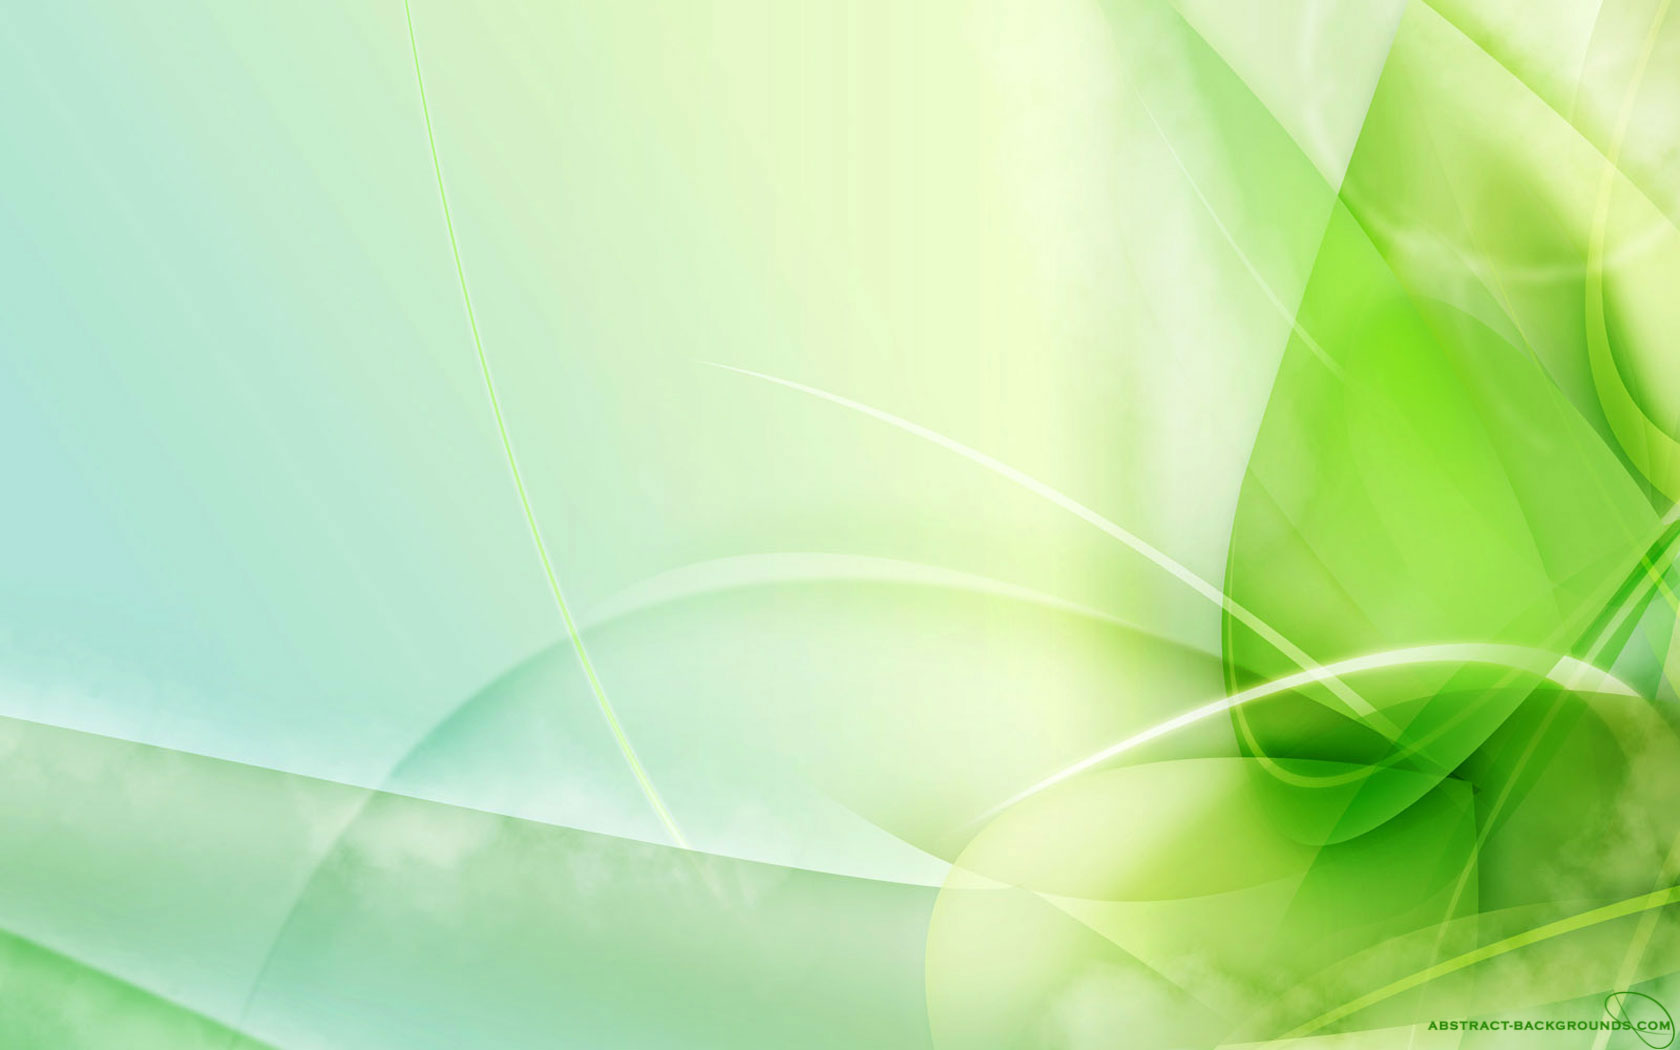 Download free HD Green Abstract Background Wallpaper, image